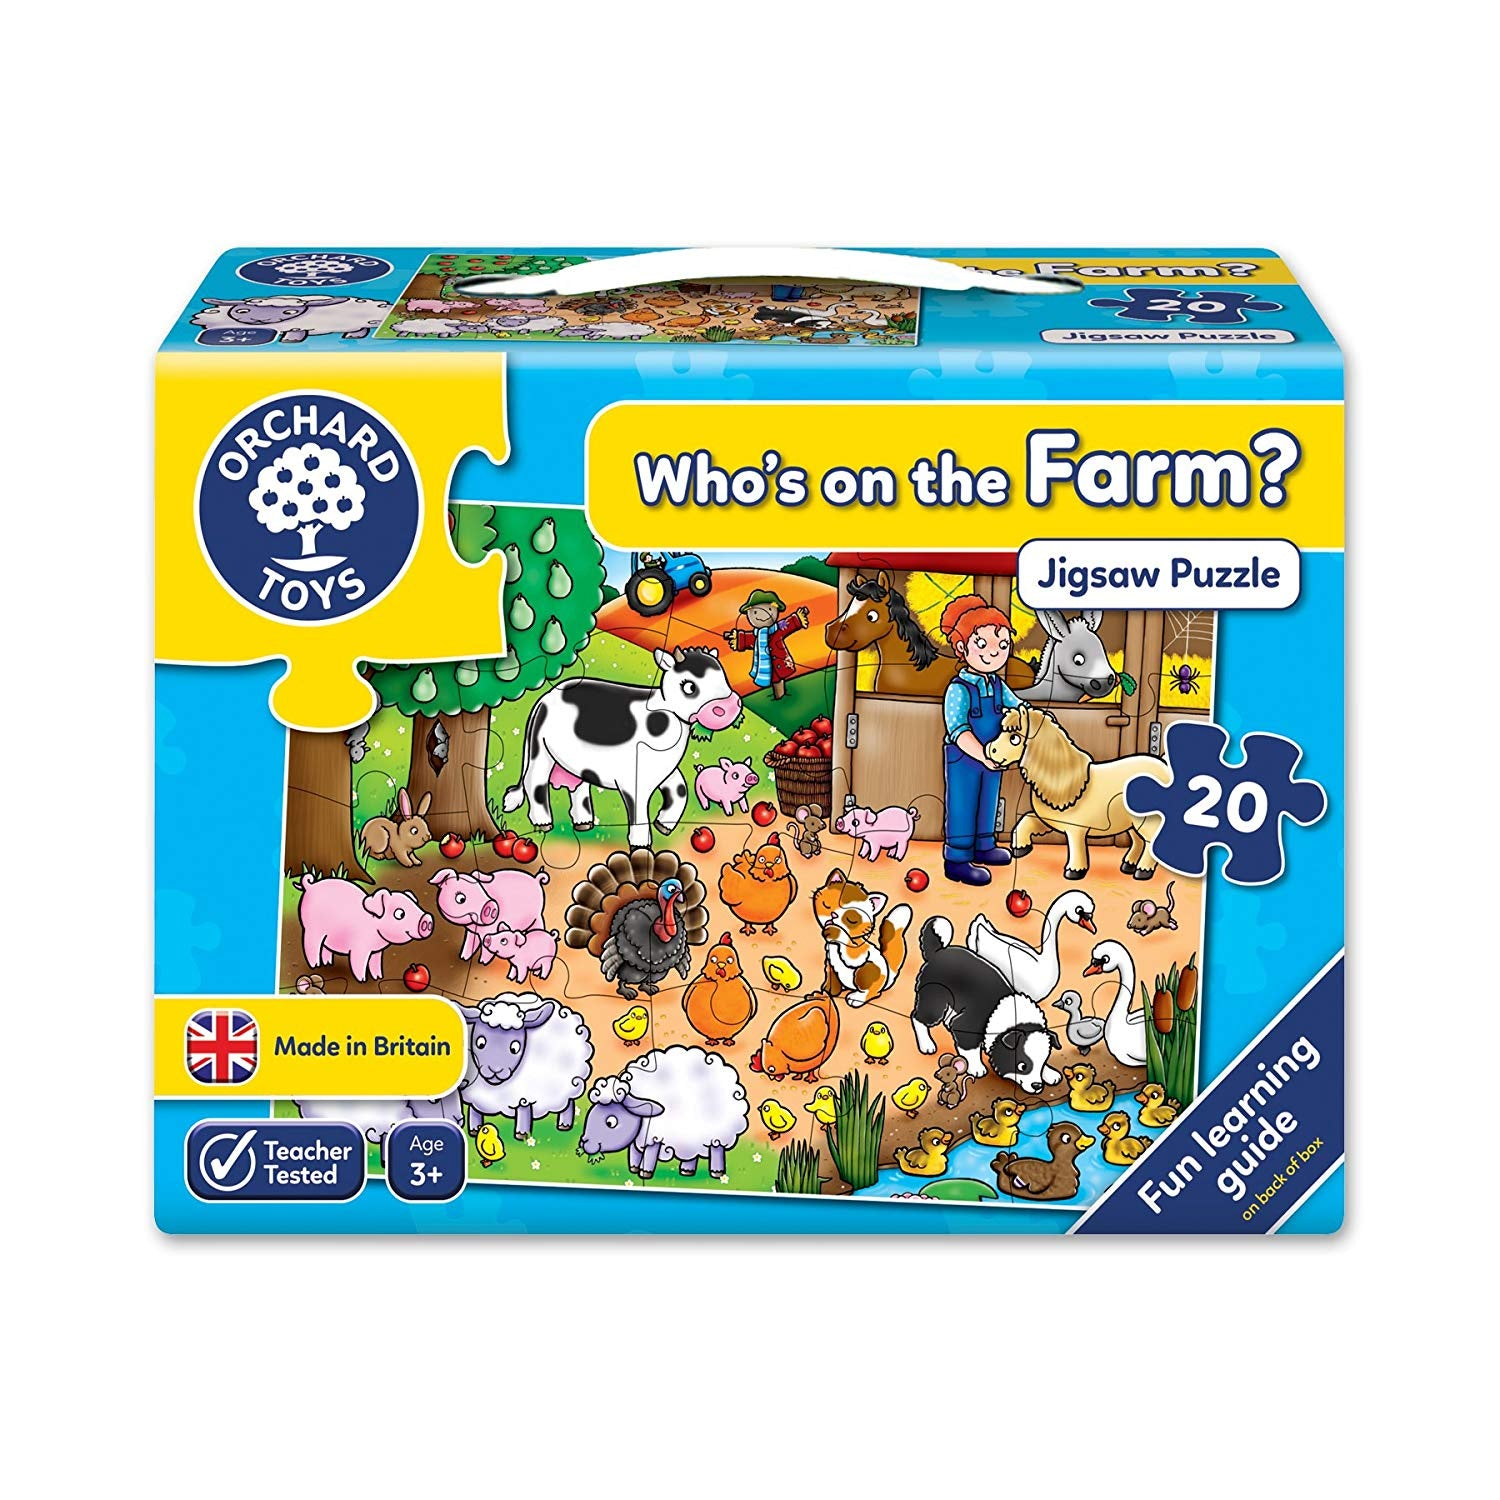 Orchard Toys Who's on the Farm Jigsaw Puzzle